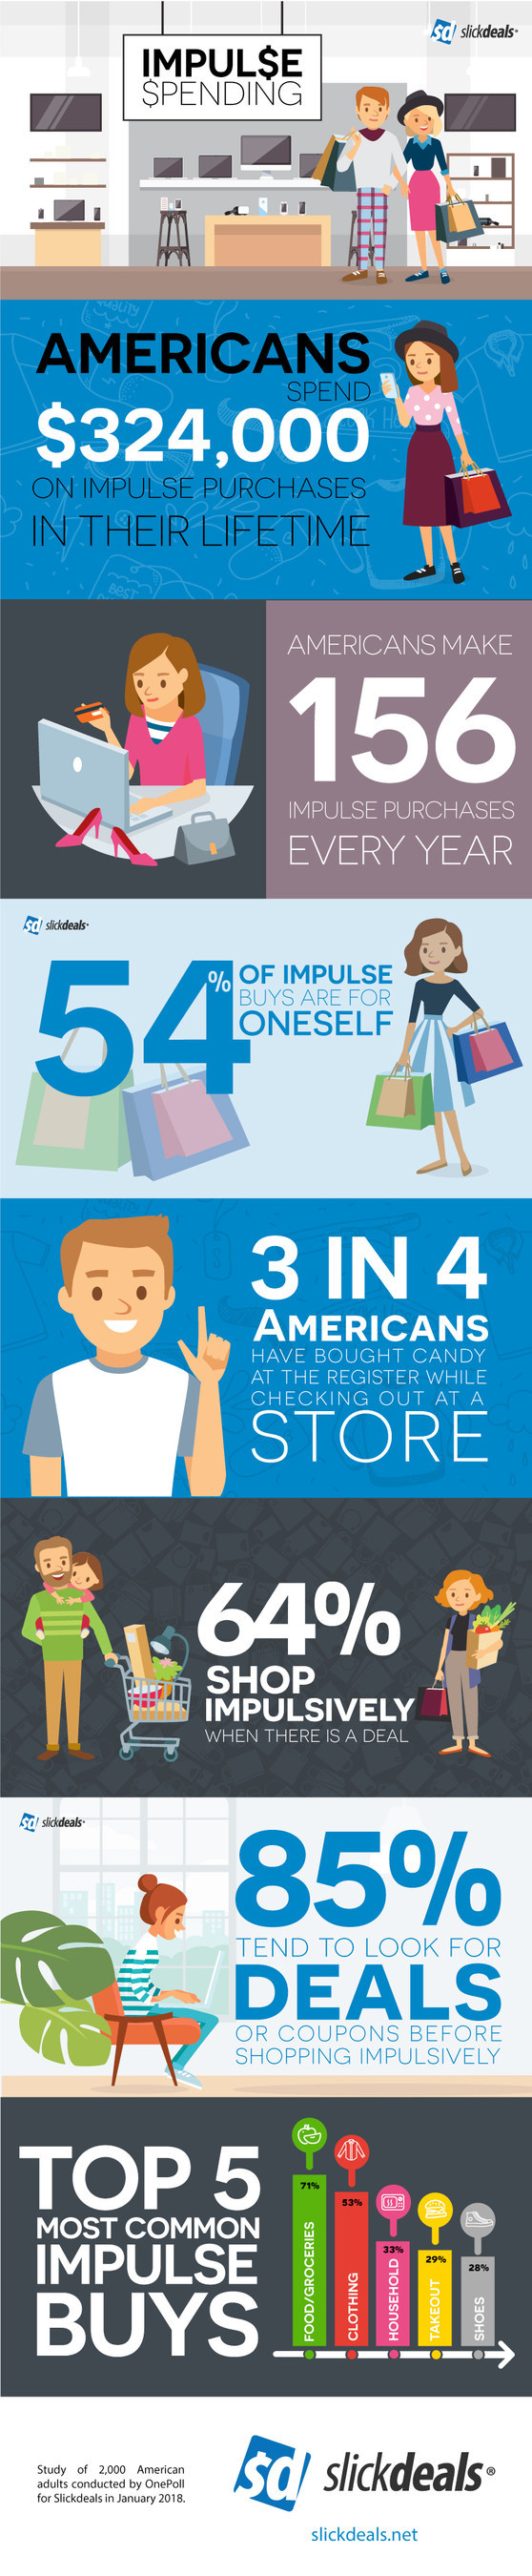 Study of 2,000 American adults conducted by OnePoll for Slickdeals